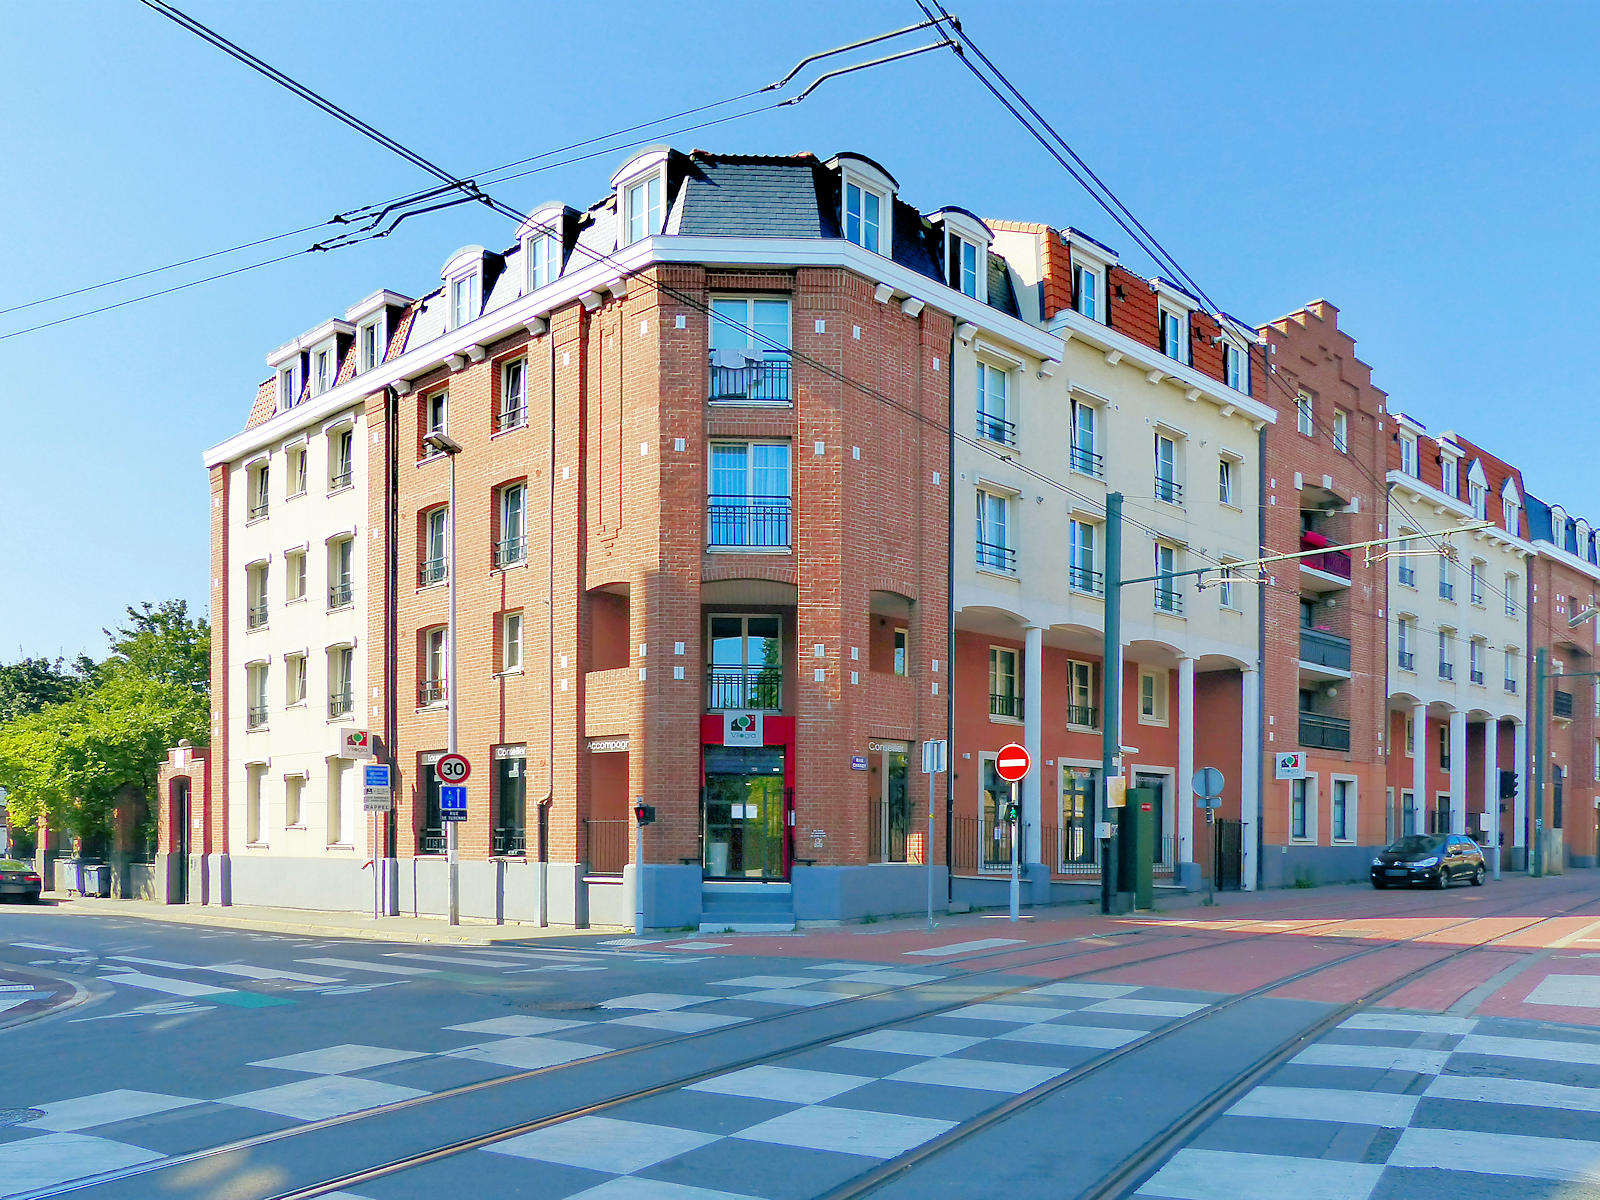 Vilogia Office HLM, 38 Rue Chanzy, Tourcoing.